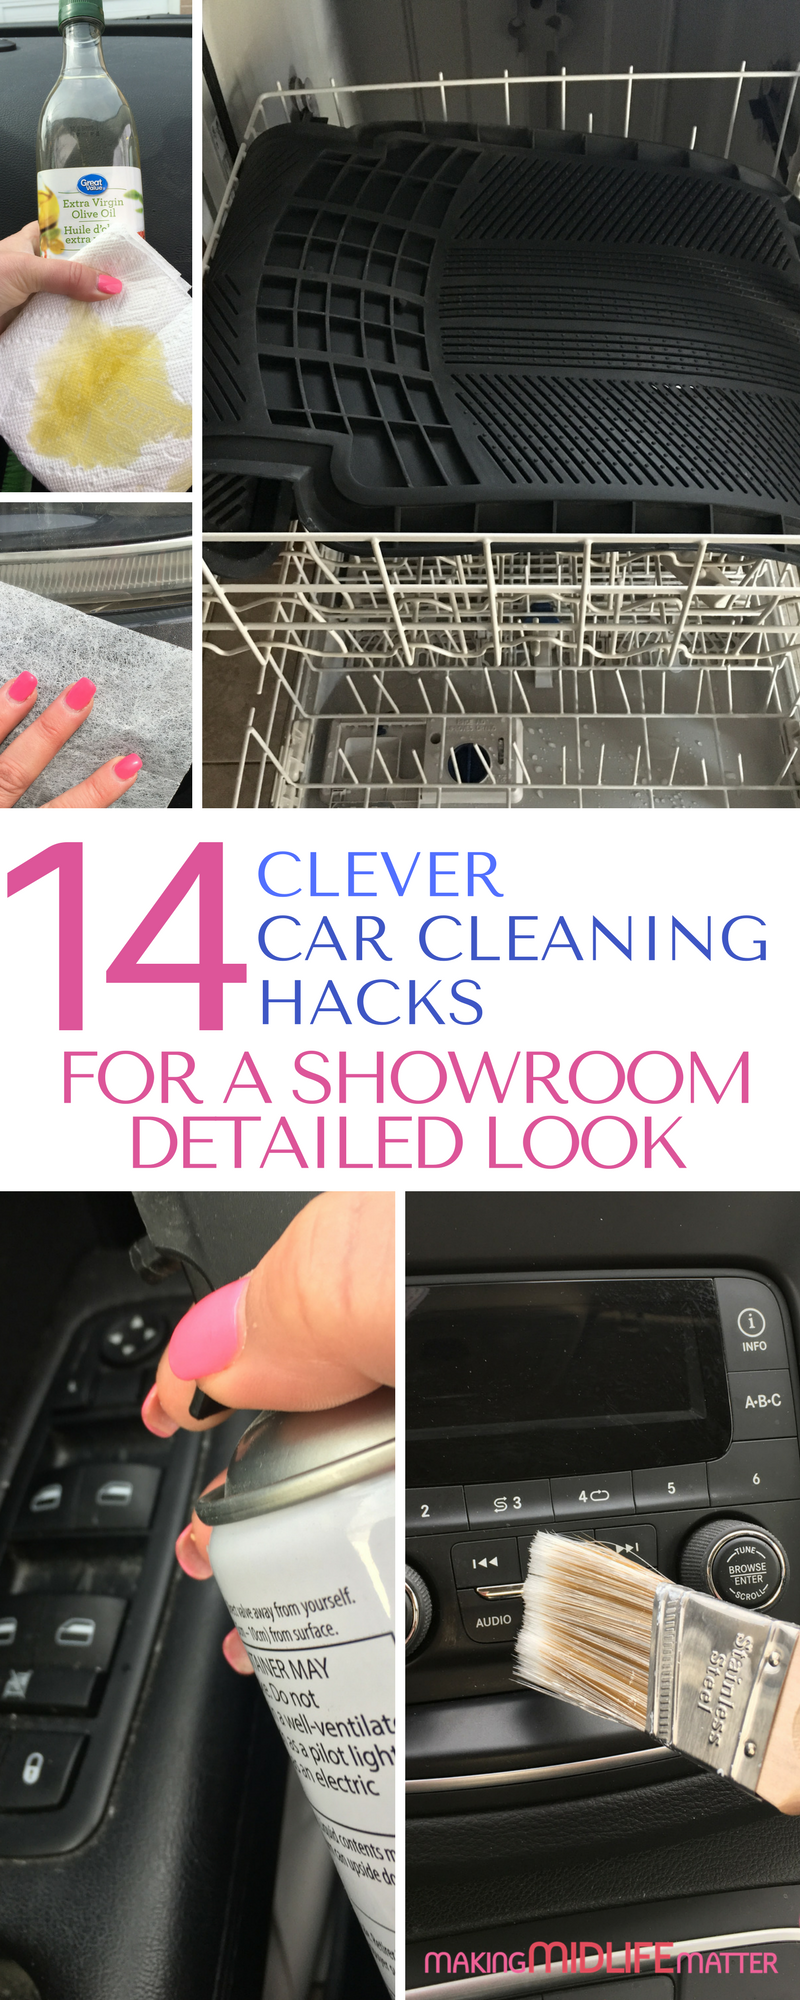 14 Clever Car Cleaning Hacks For A Showroom Detailed Look | Making Midlife Matter